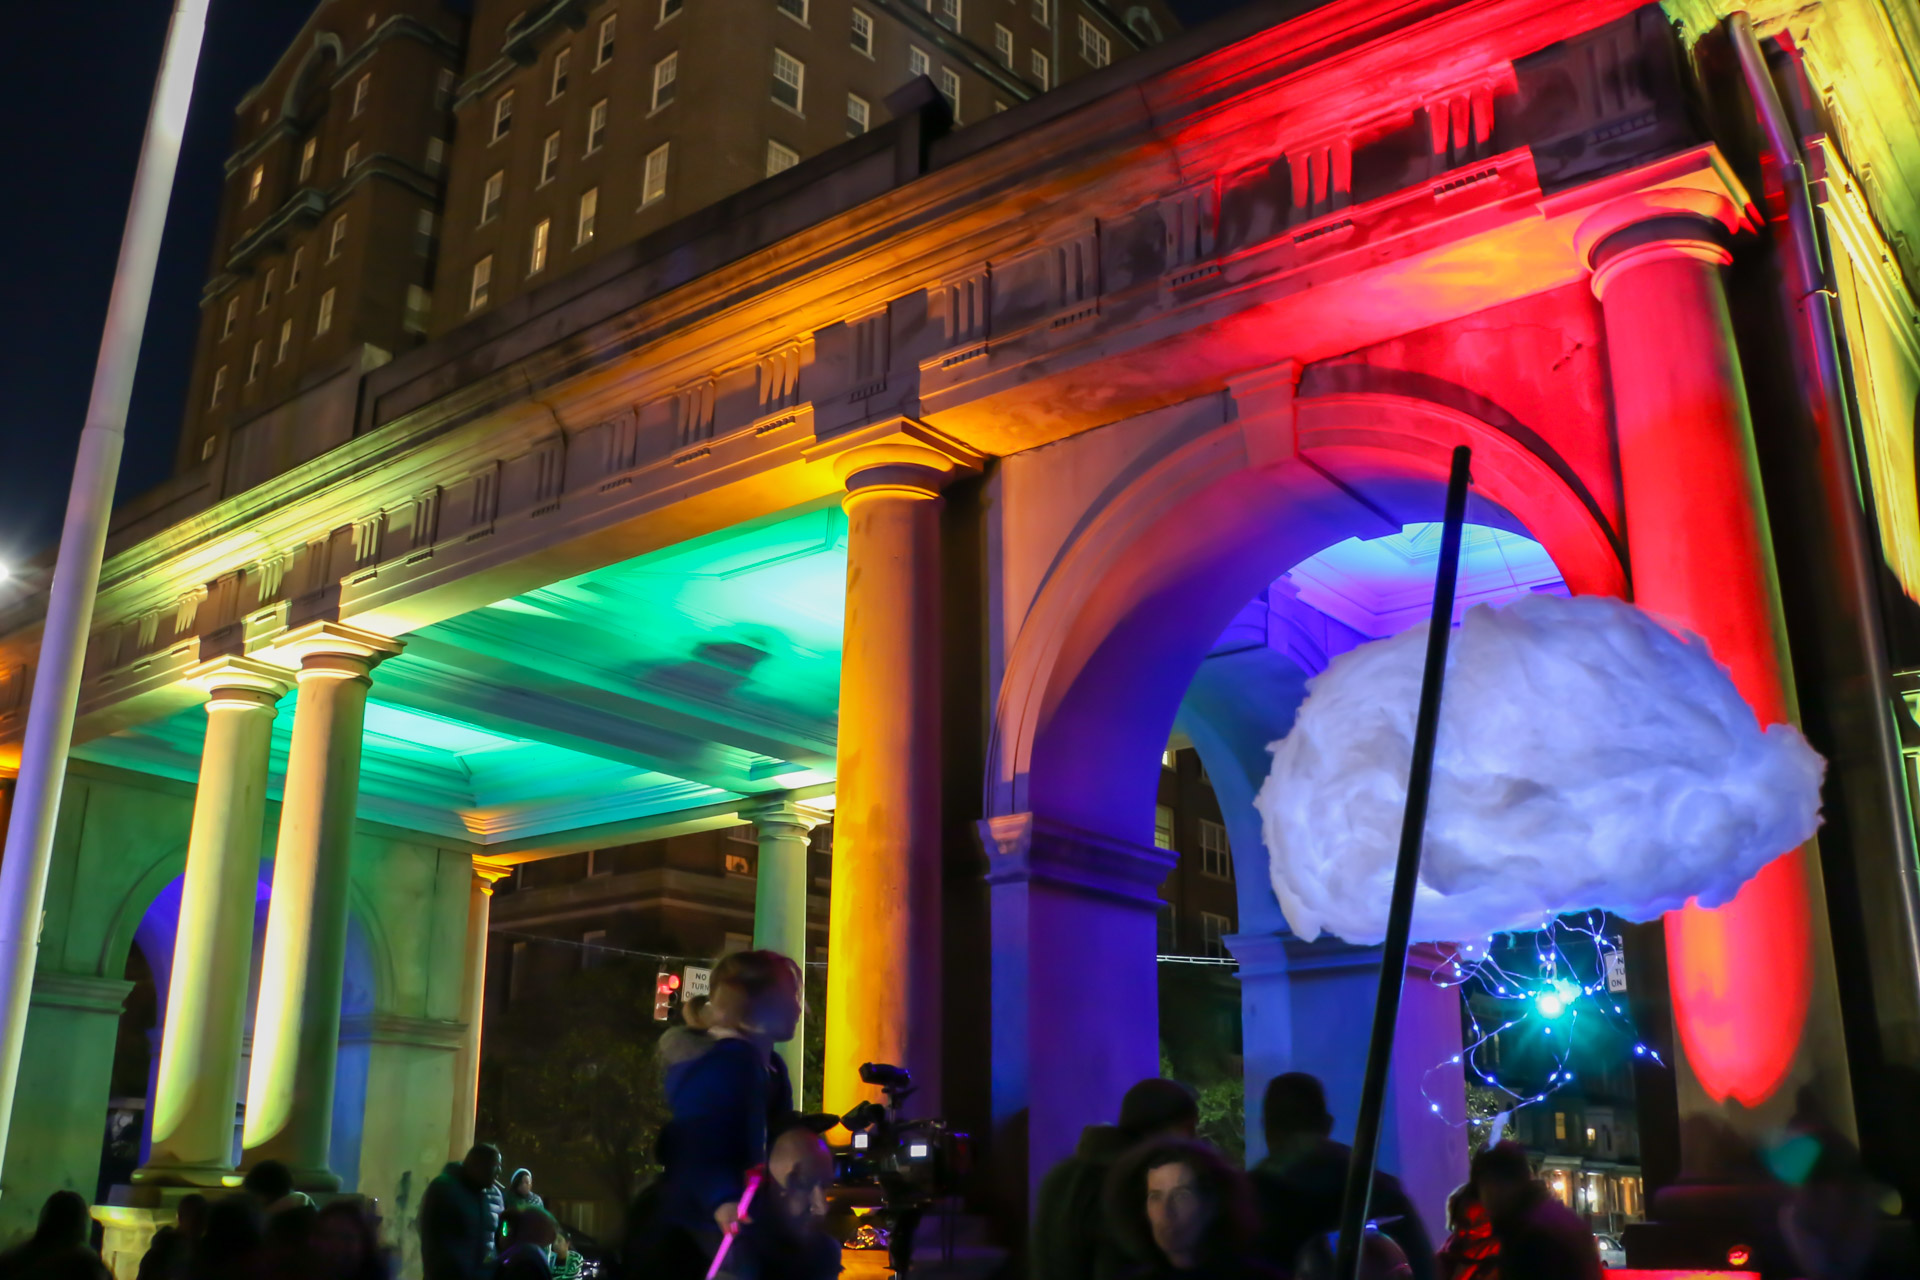 Arches & Access - Druid Hill Park Gate light art and crowd